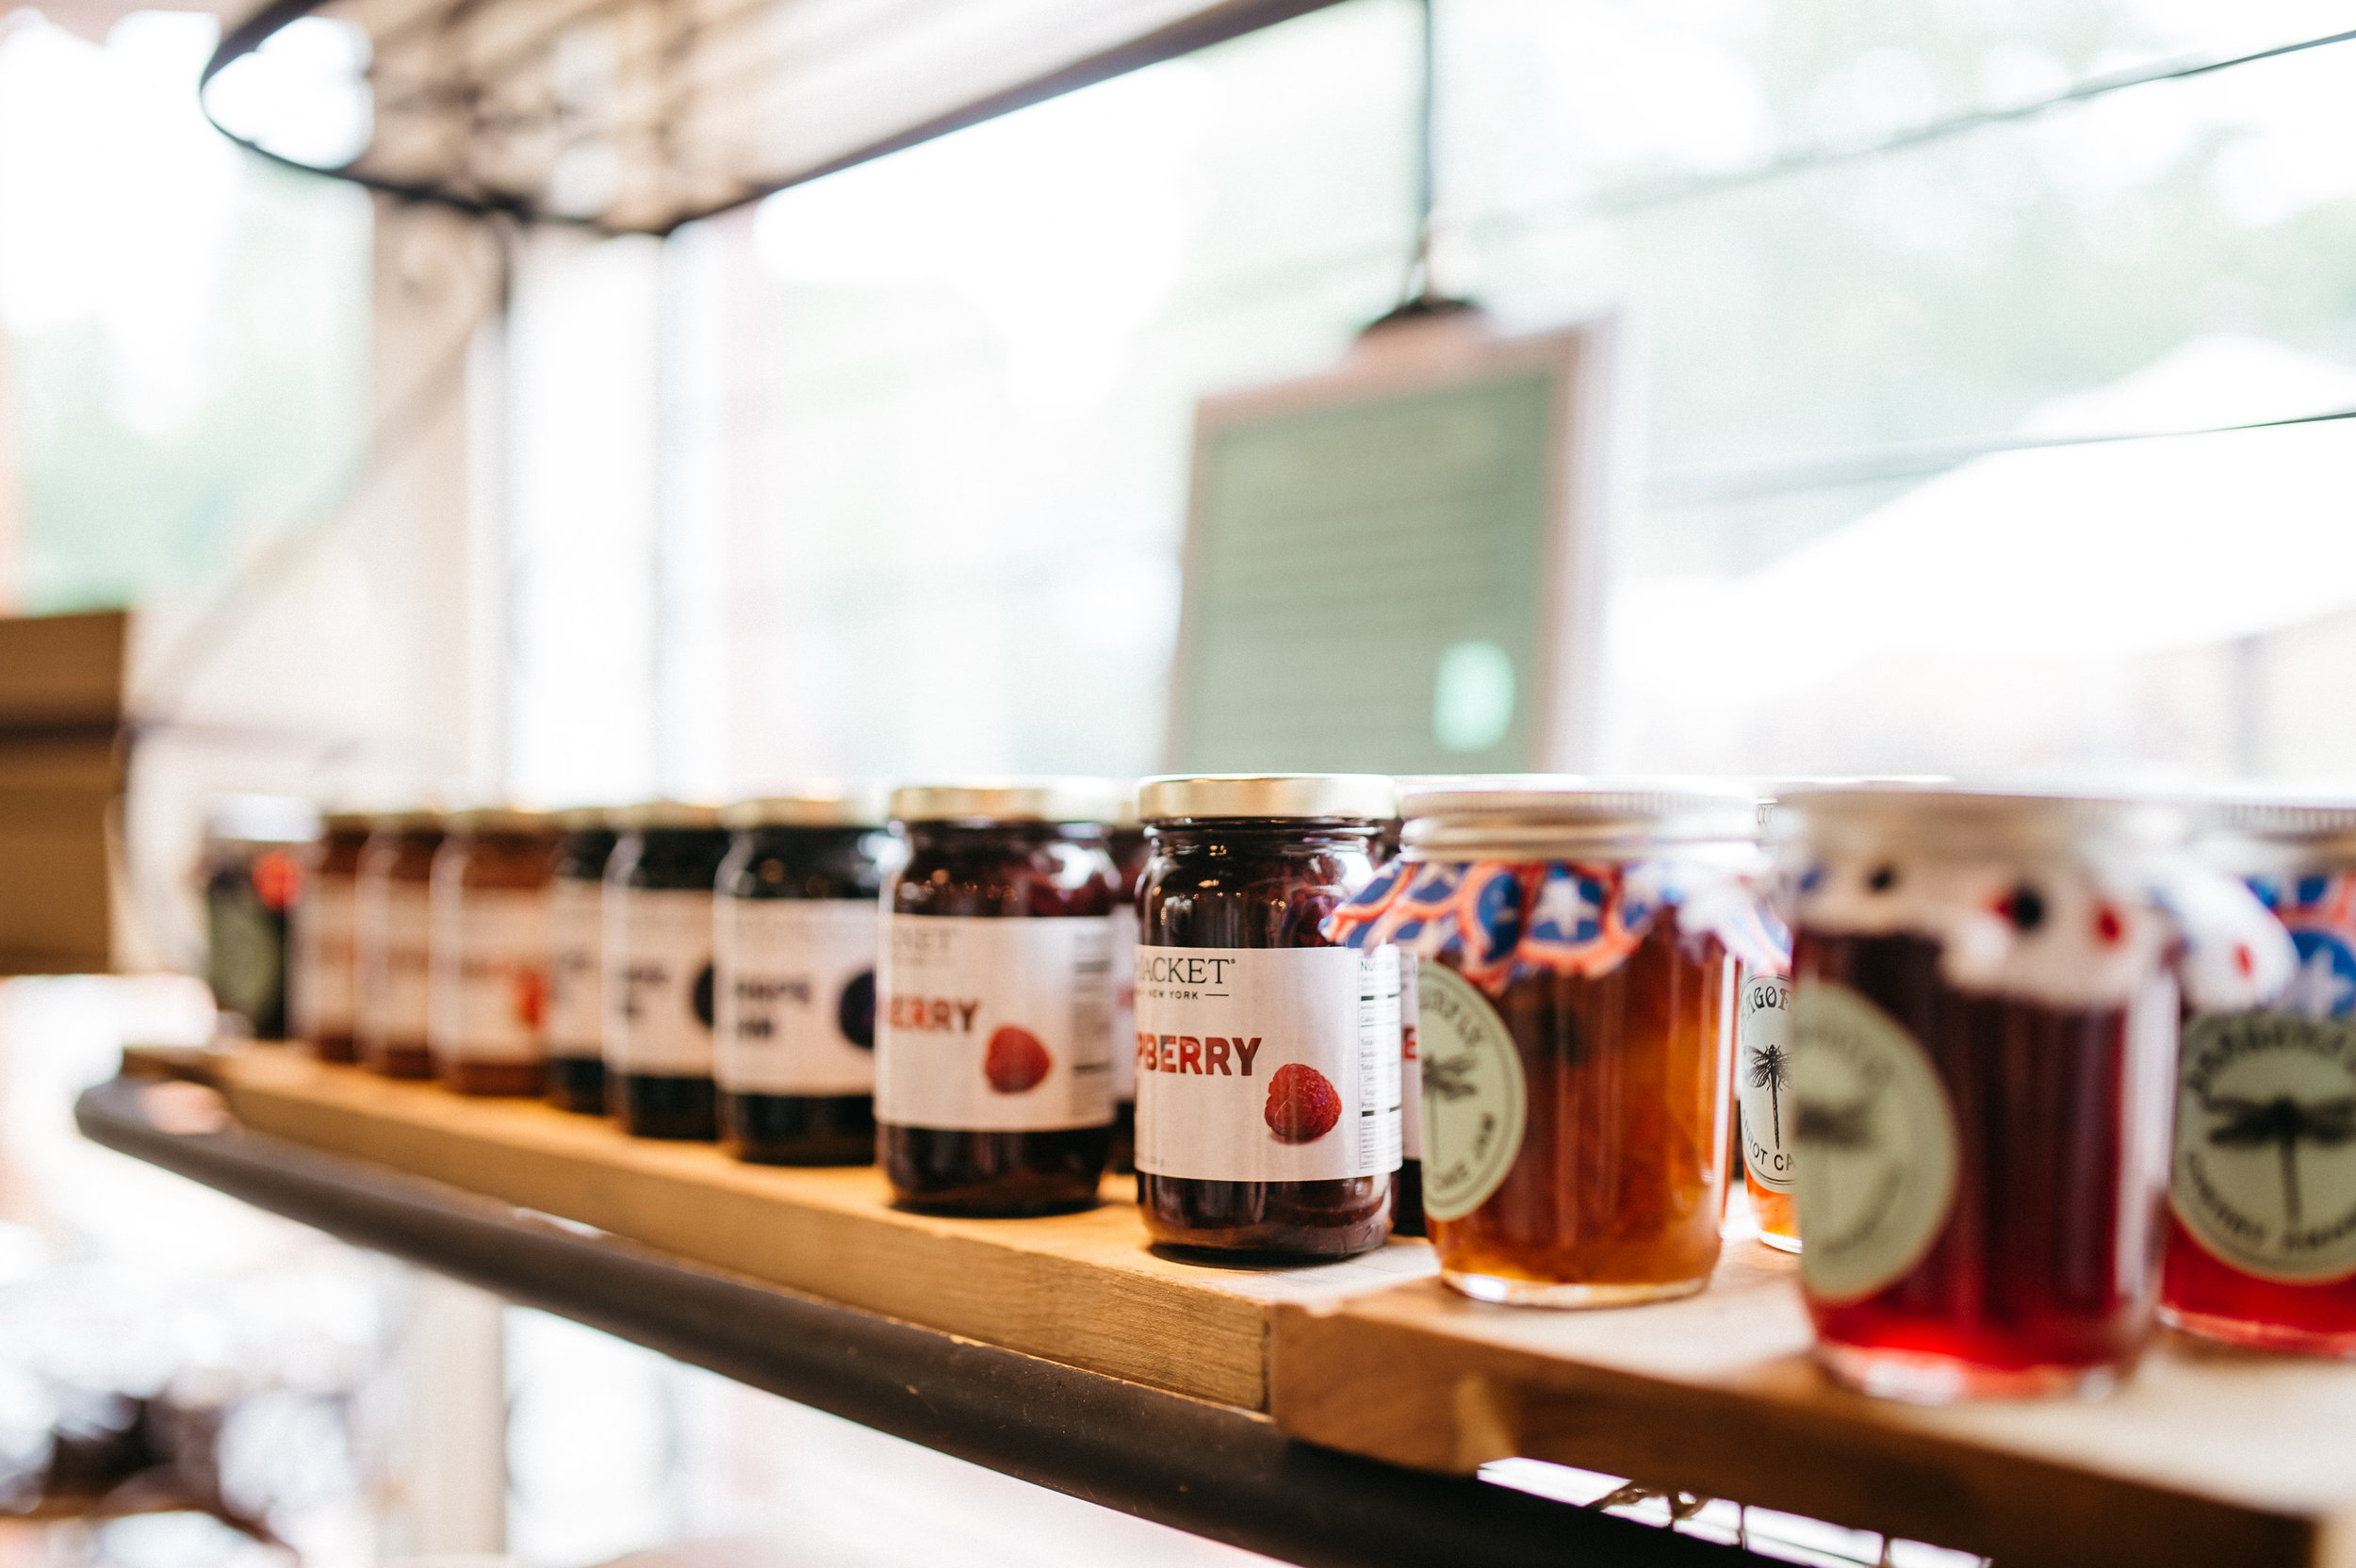 Seasonal preserves and jams are available.